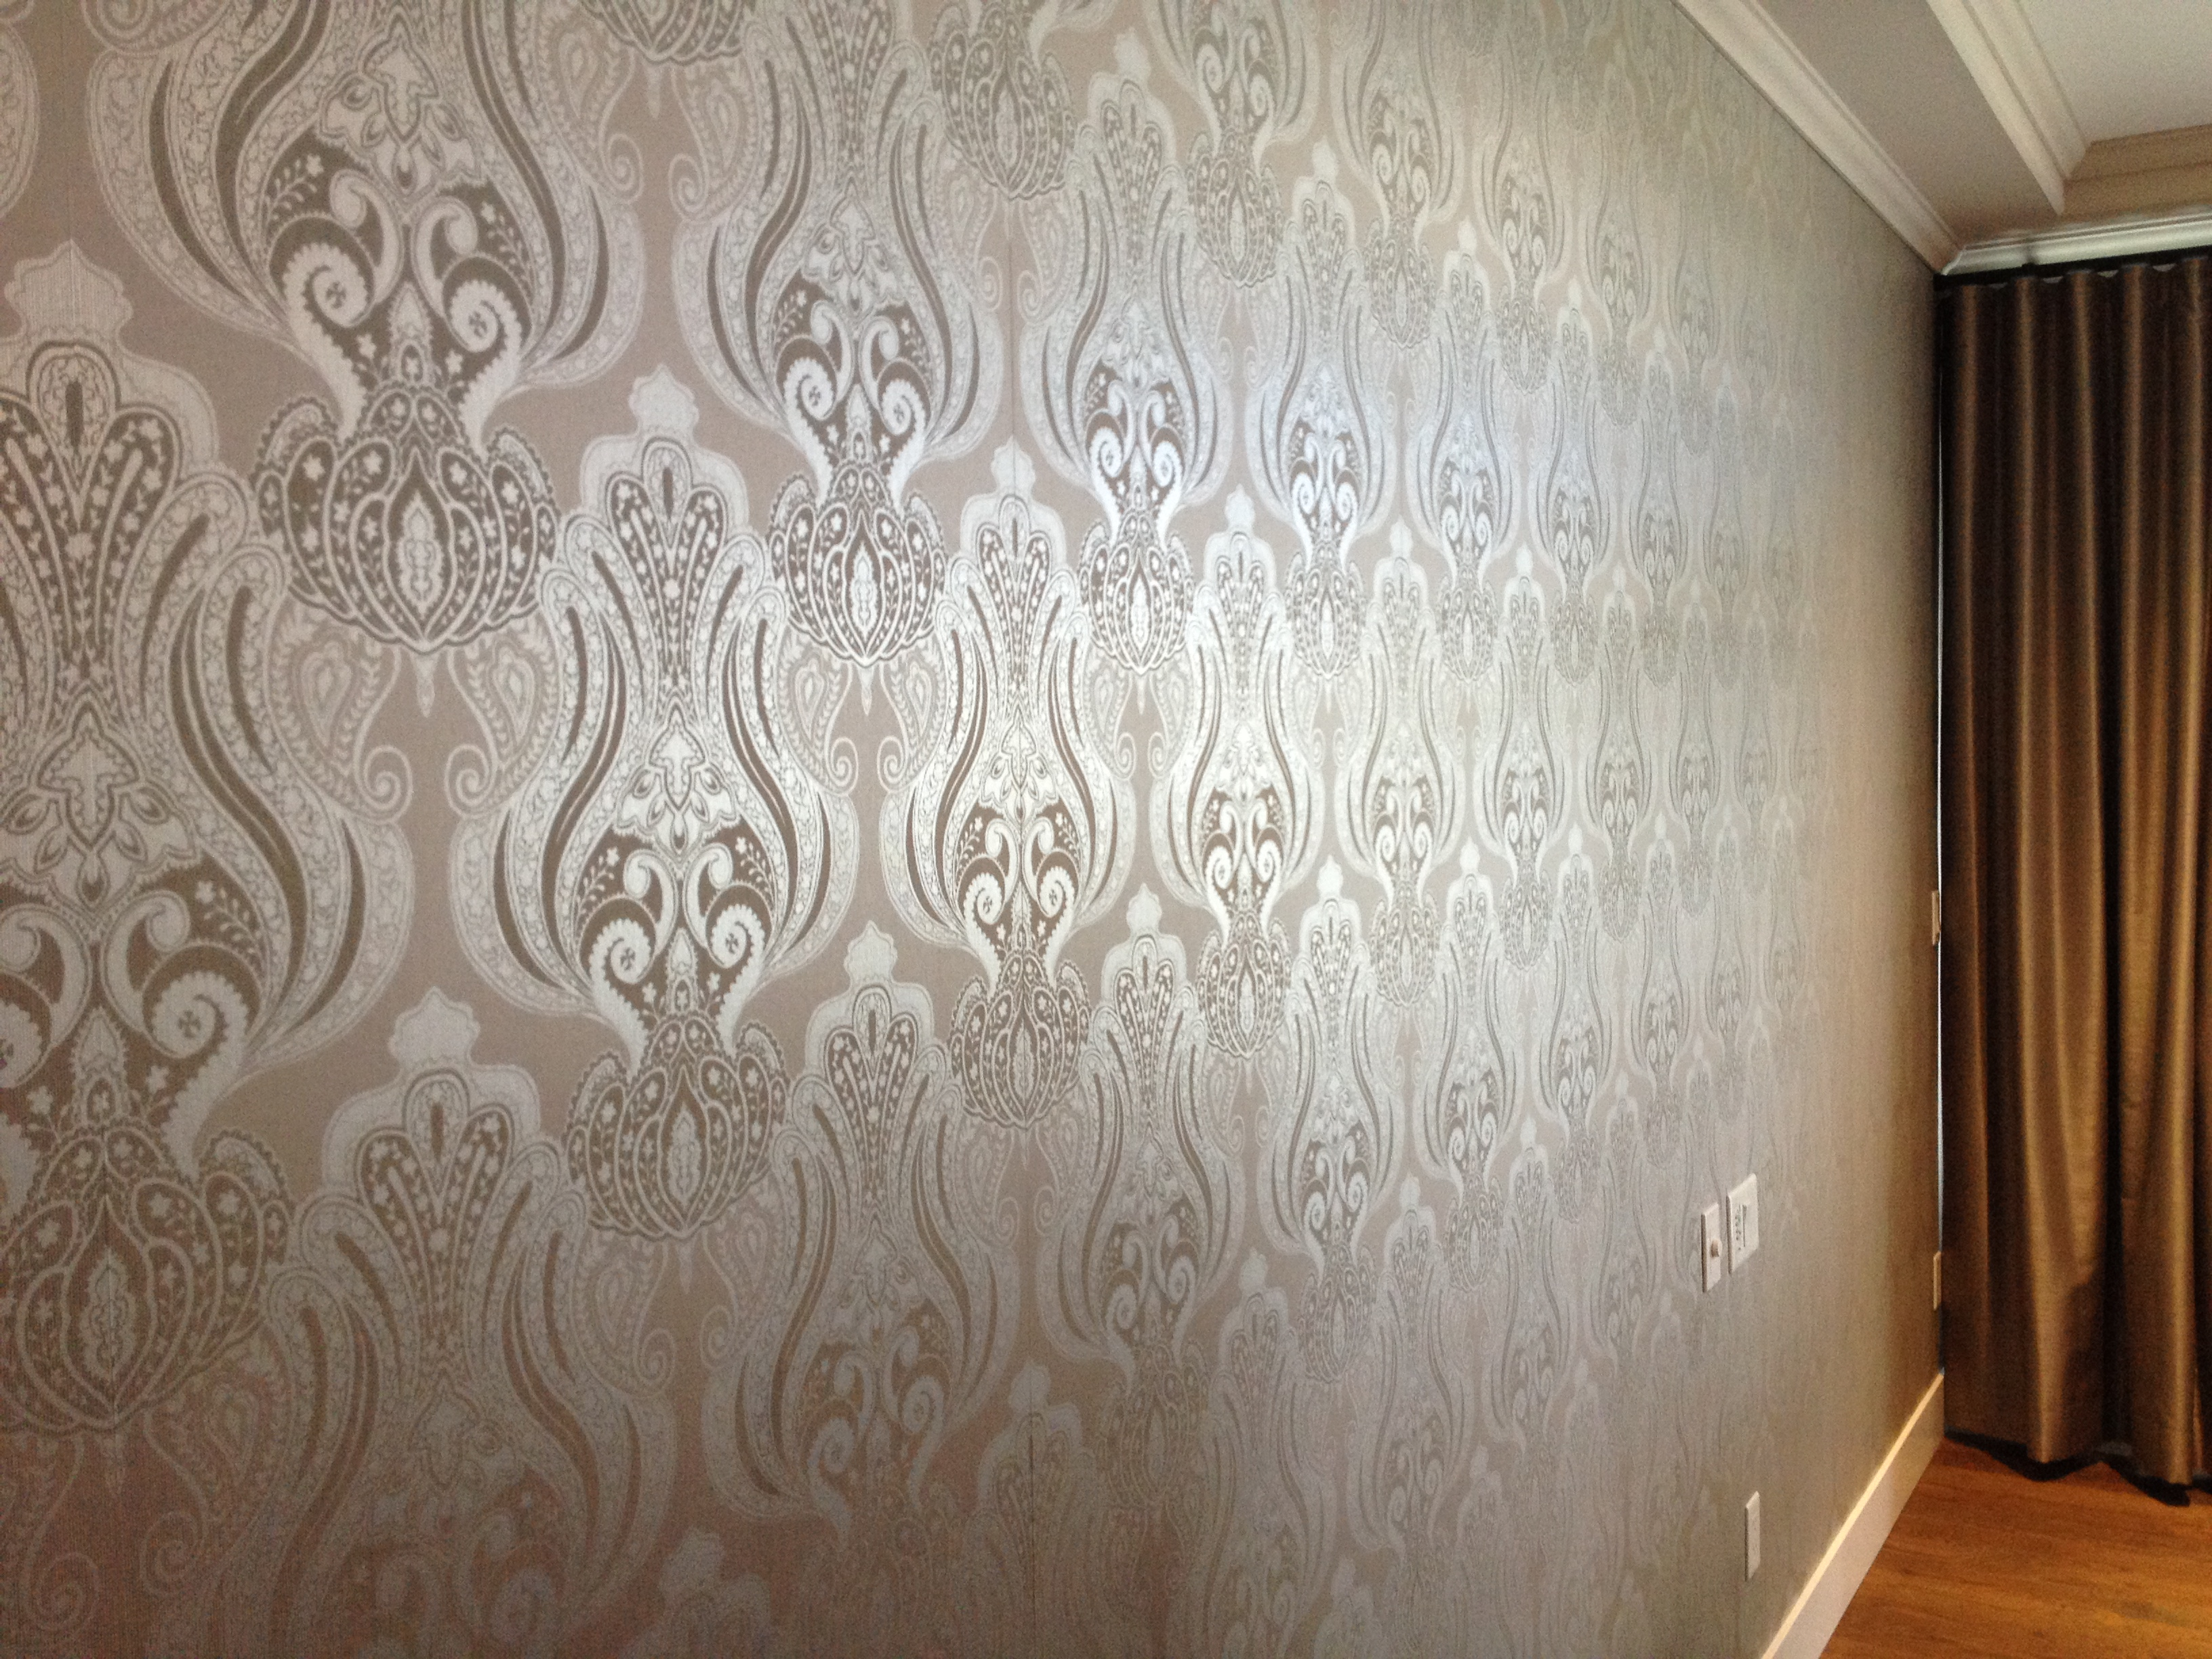 Doherty Studios \u2013 Painting and Wallcoverings \u2013 Painting, Vinyl and Wallpaper by Doherty Studios